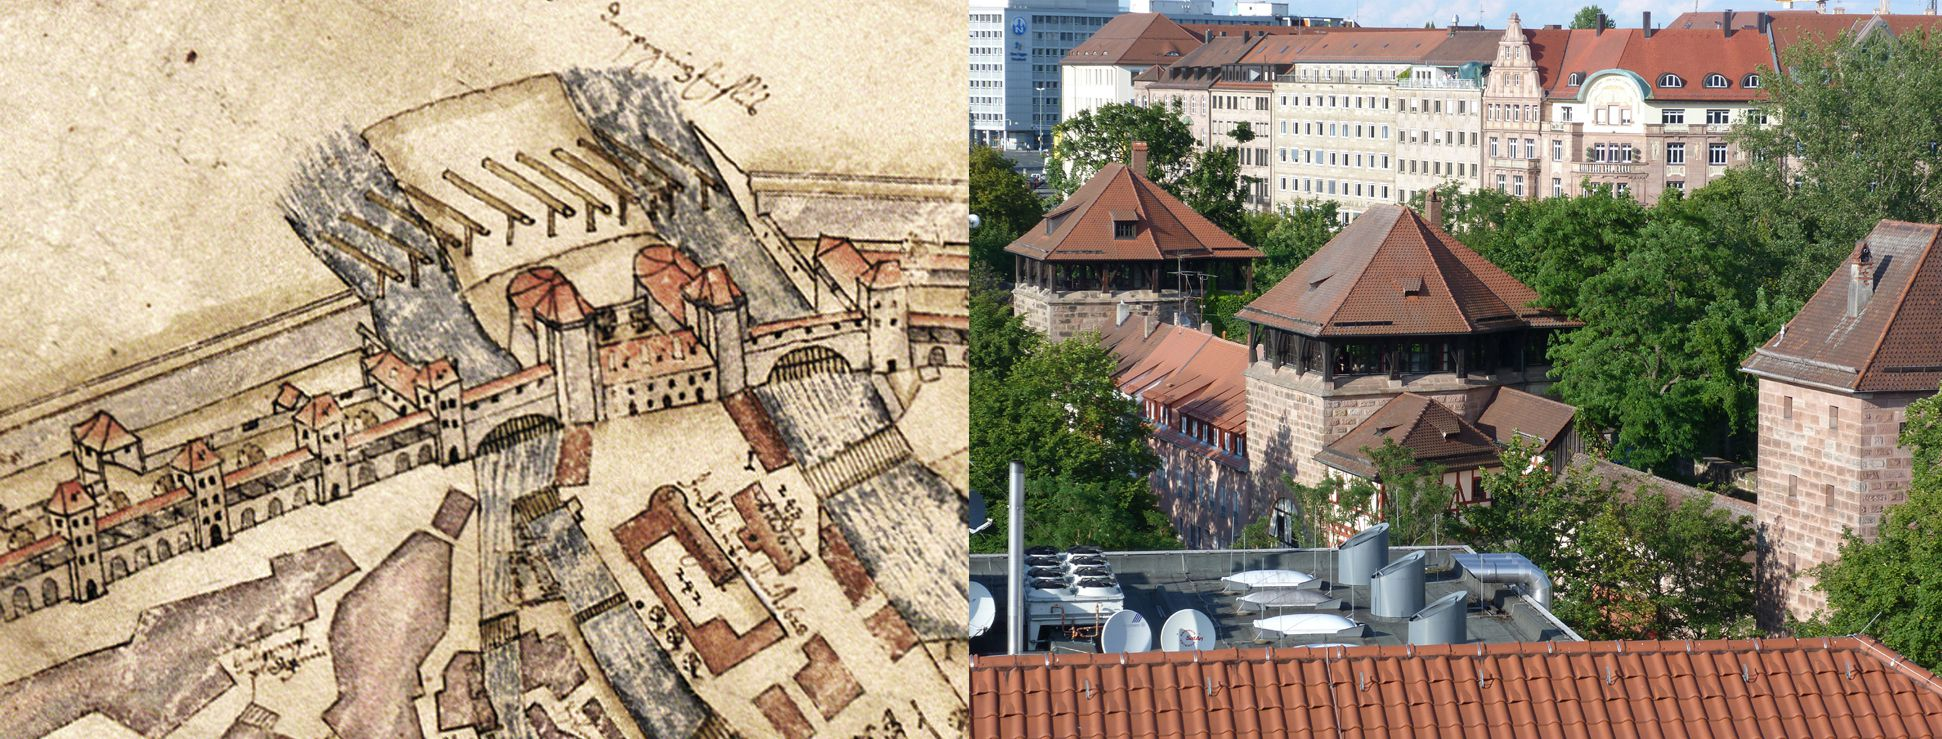 This City of Nuremberg within its enclosing walls… Comparison of Bien and aerial photo (from the southwest)